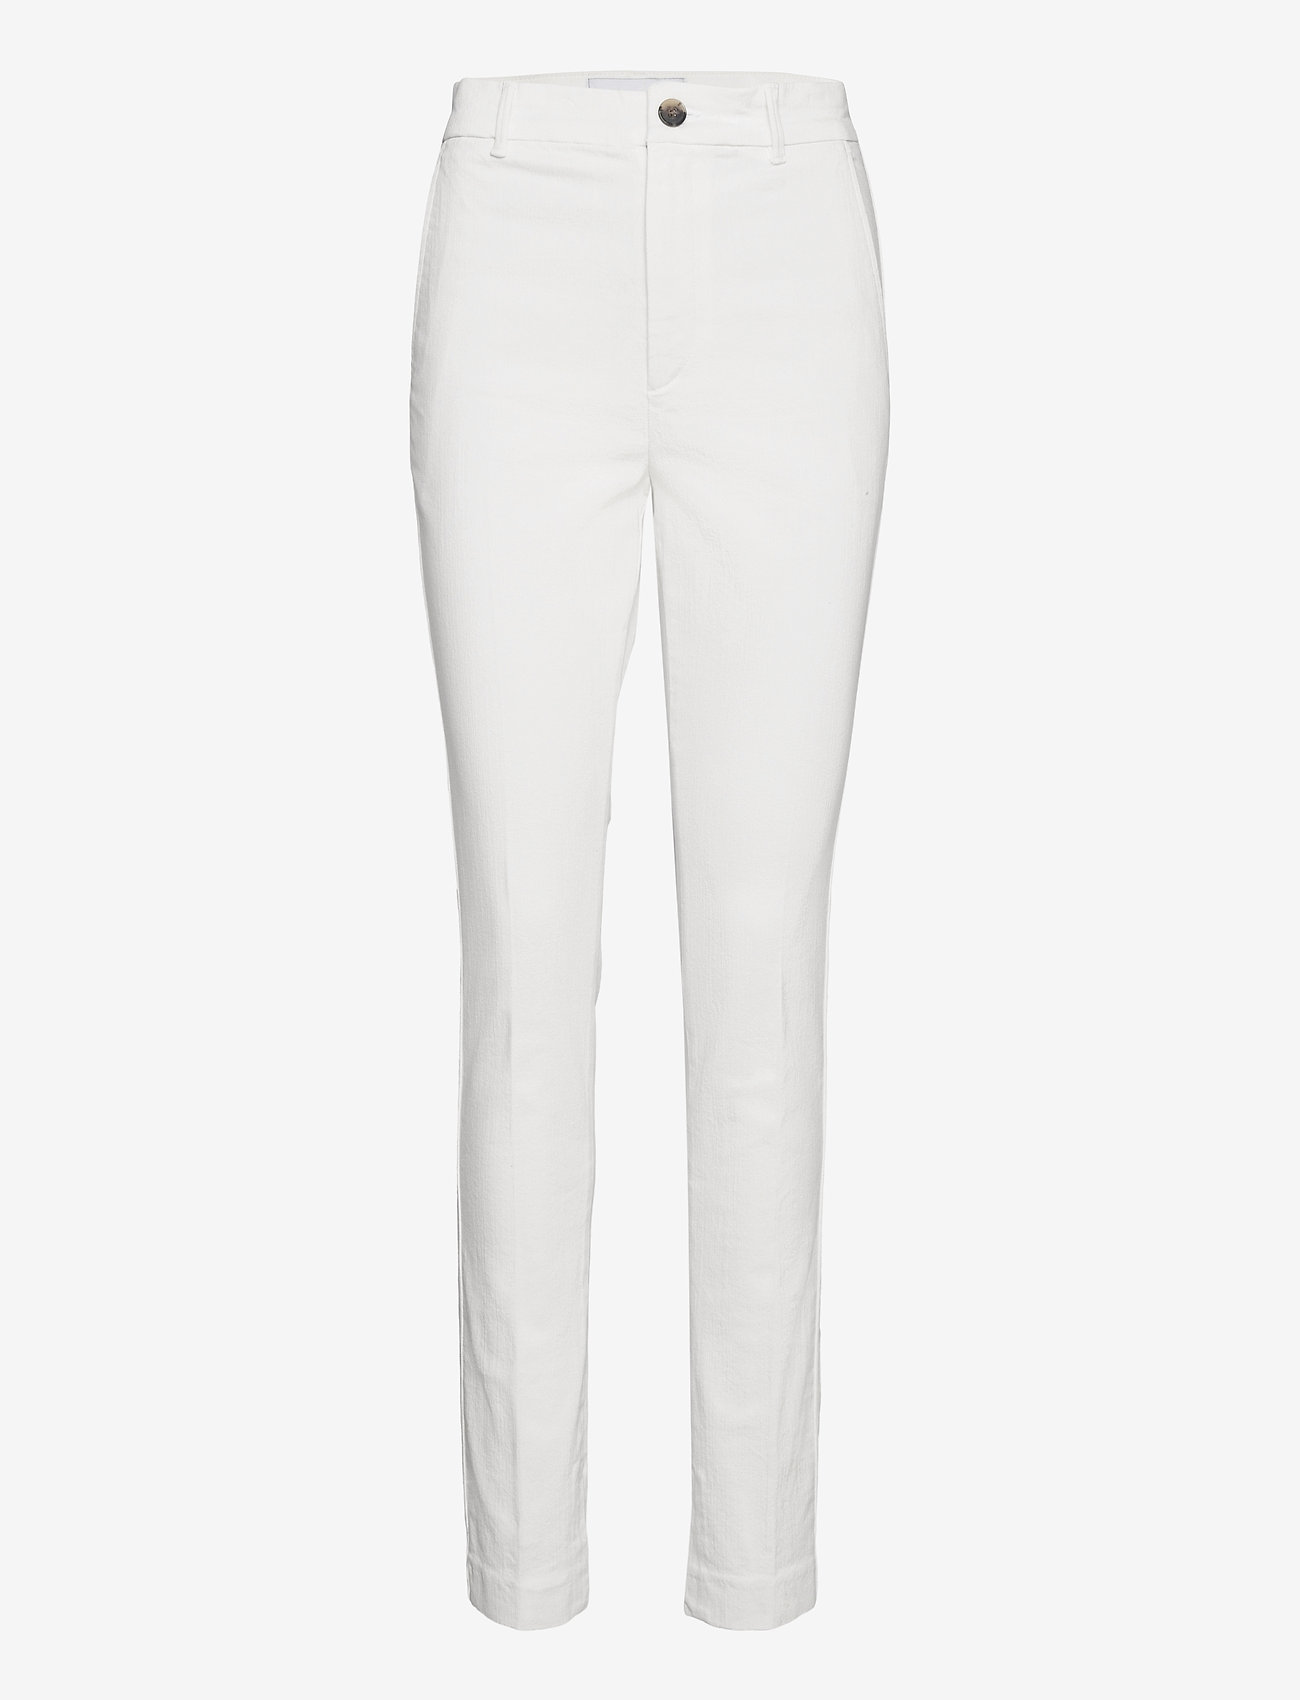 Tomorrow - Dylan tailor pant color - chinos - ecru - 0